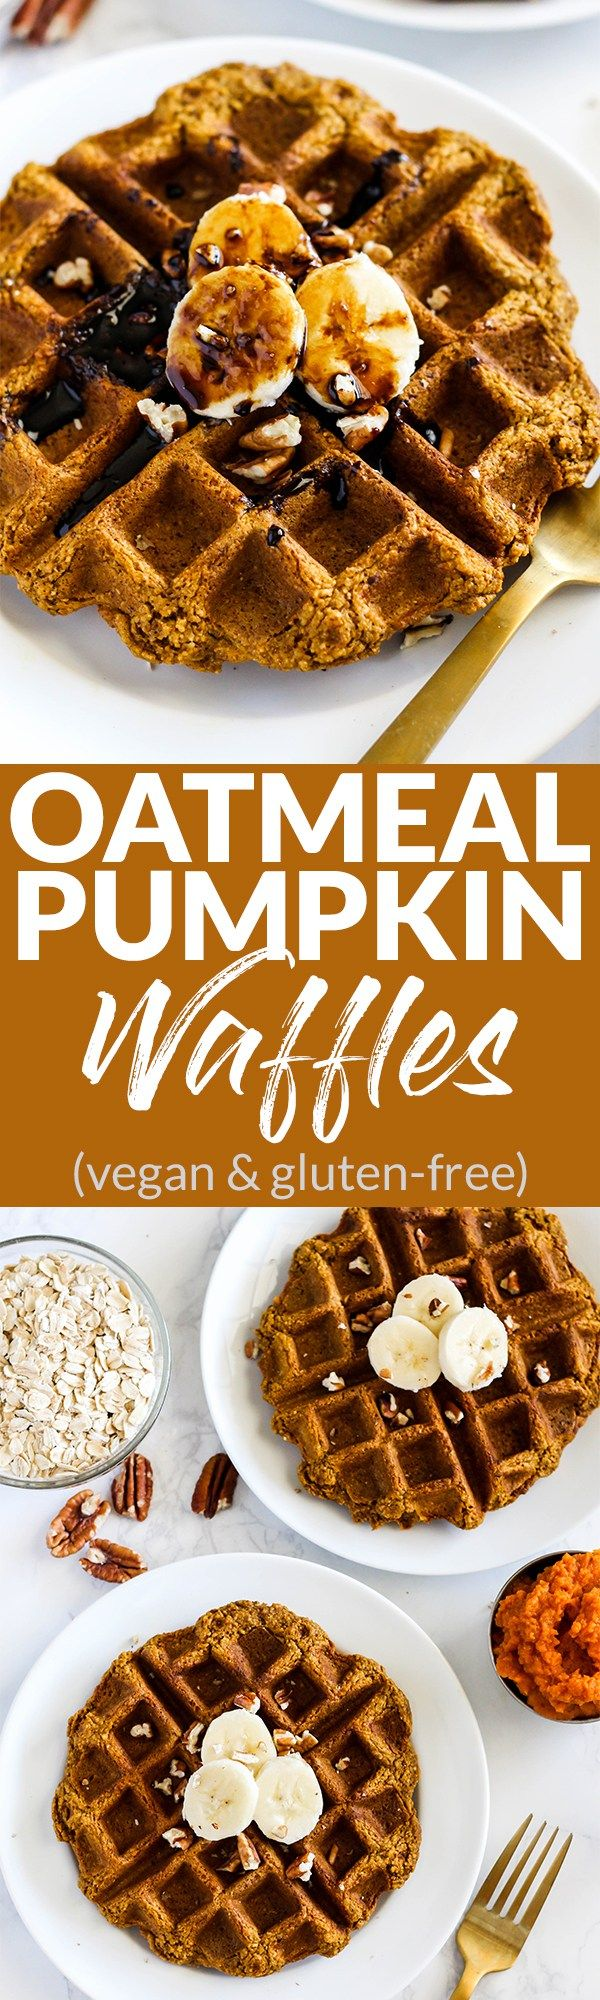 Perfect for weekday breakfasts or weekend brunch, these wholesome Vegan Oatmeal Pumpkin Pancakes will be on repeat this fall & winter! (gluten-free) @LoveMySilk #TastesLikeBetter #sponsor